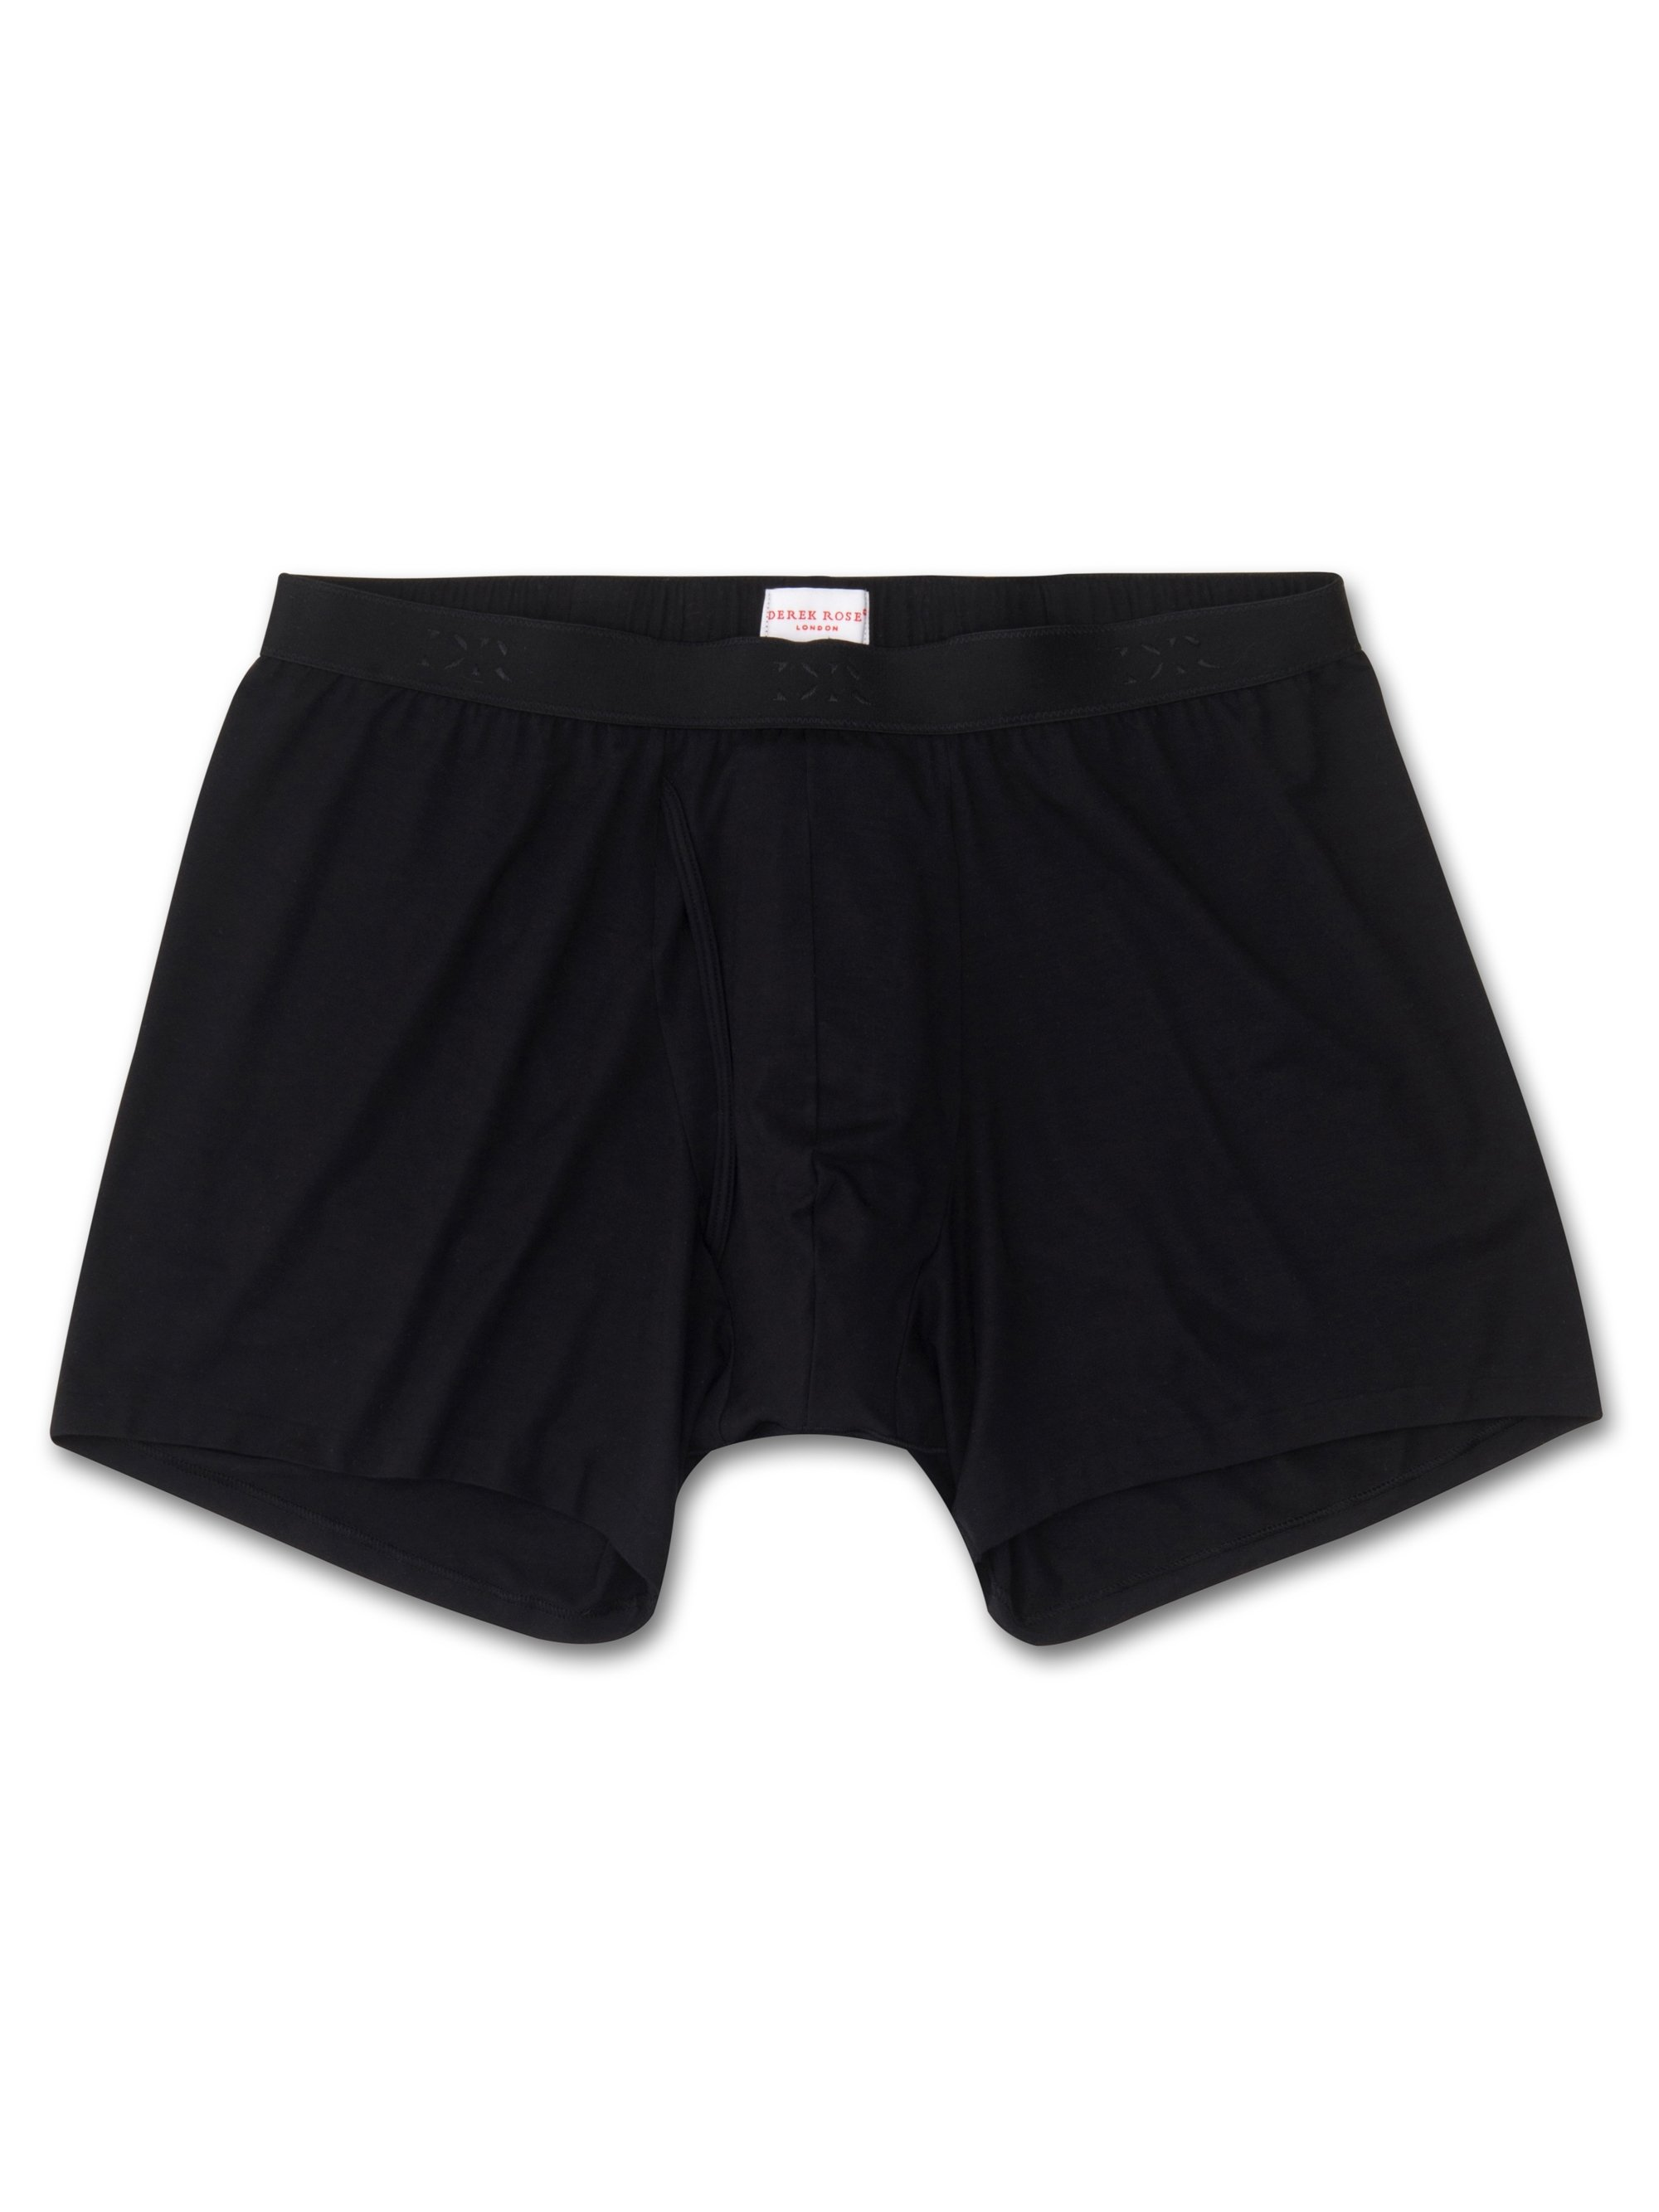 Men's Trunks Alex Micro Modal Stretch Black